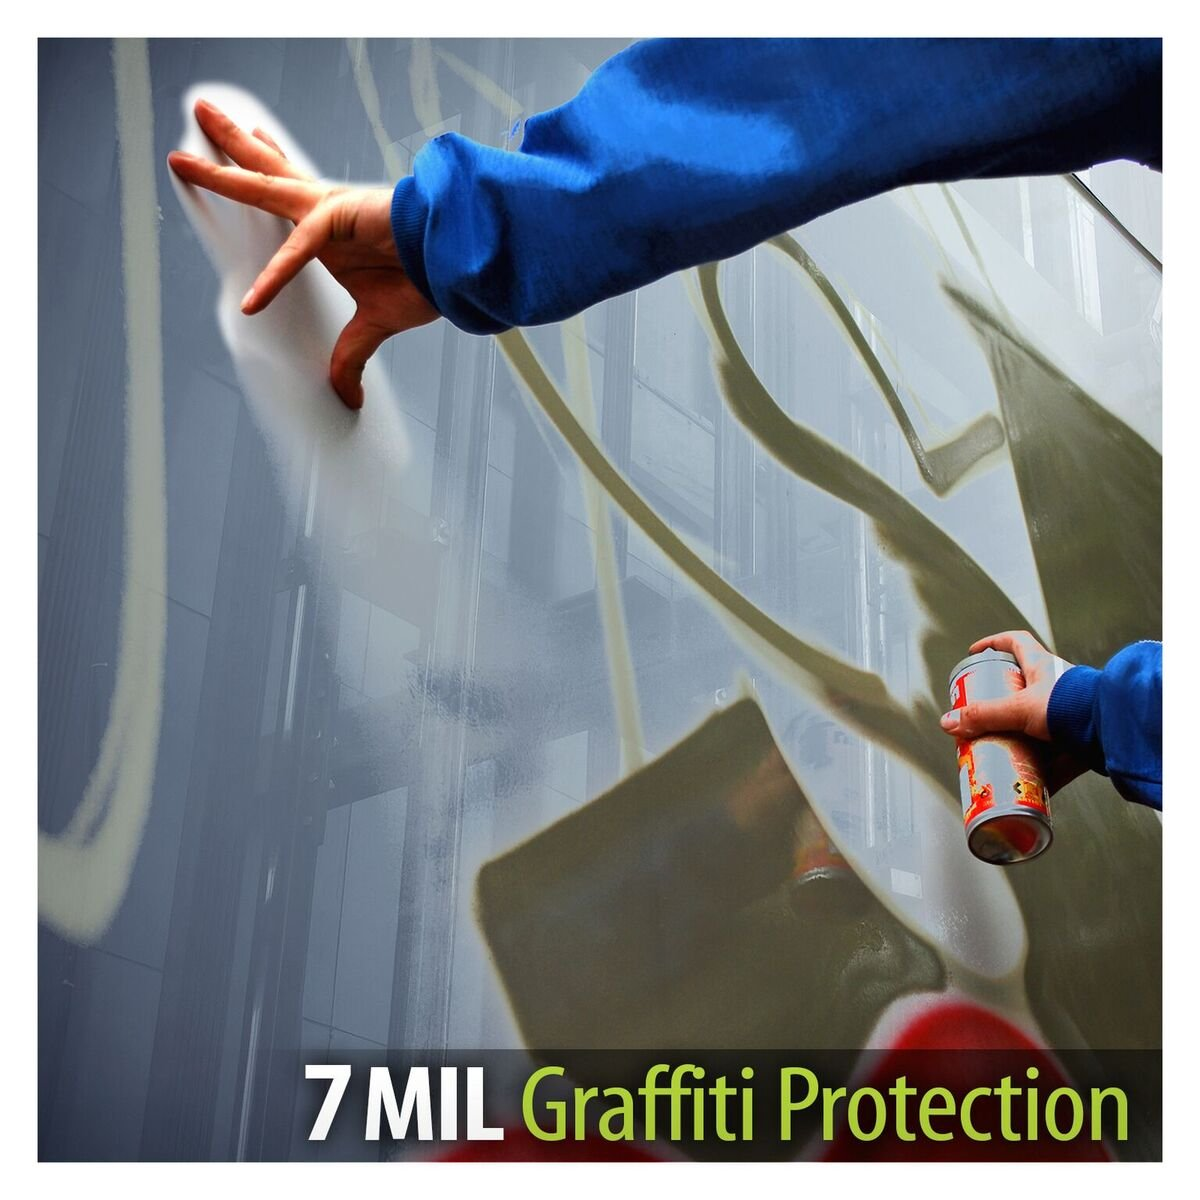 BDF AG7M Window Film Graffiti Protection 7 Mil Clear (60in X 25ft) by Buydecorativefilm (Image #5)